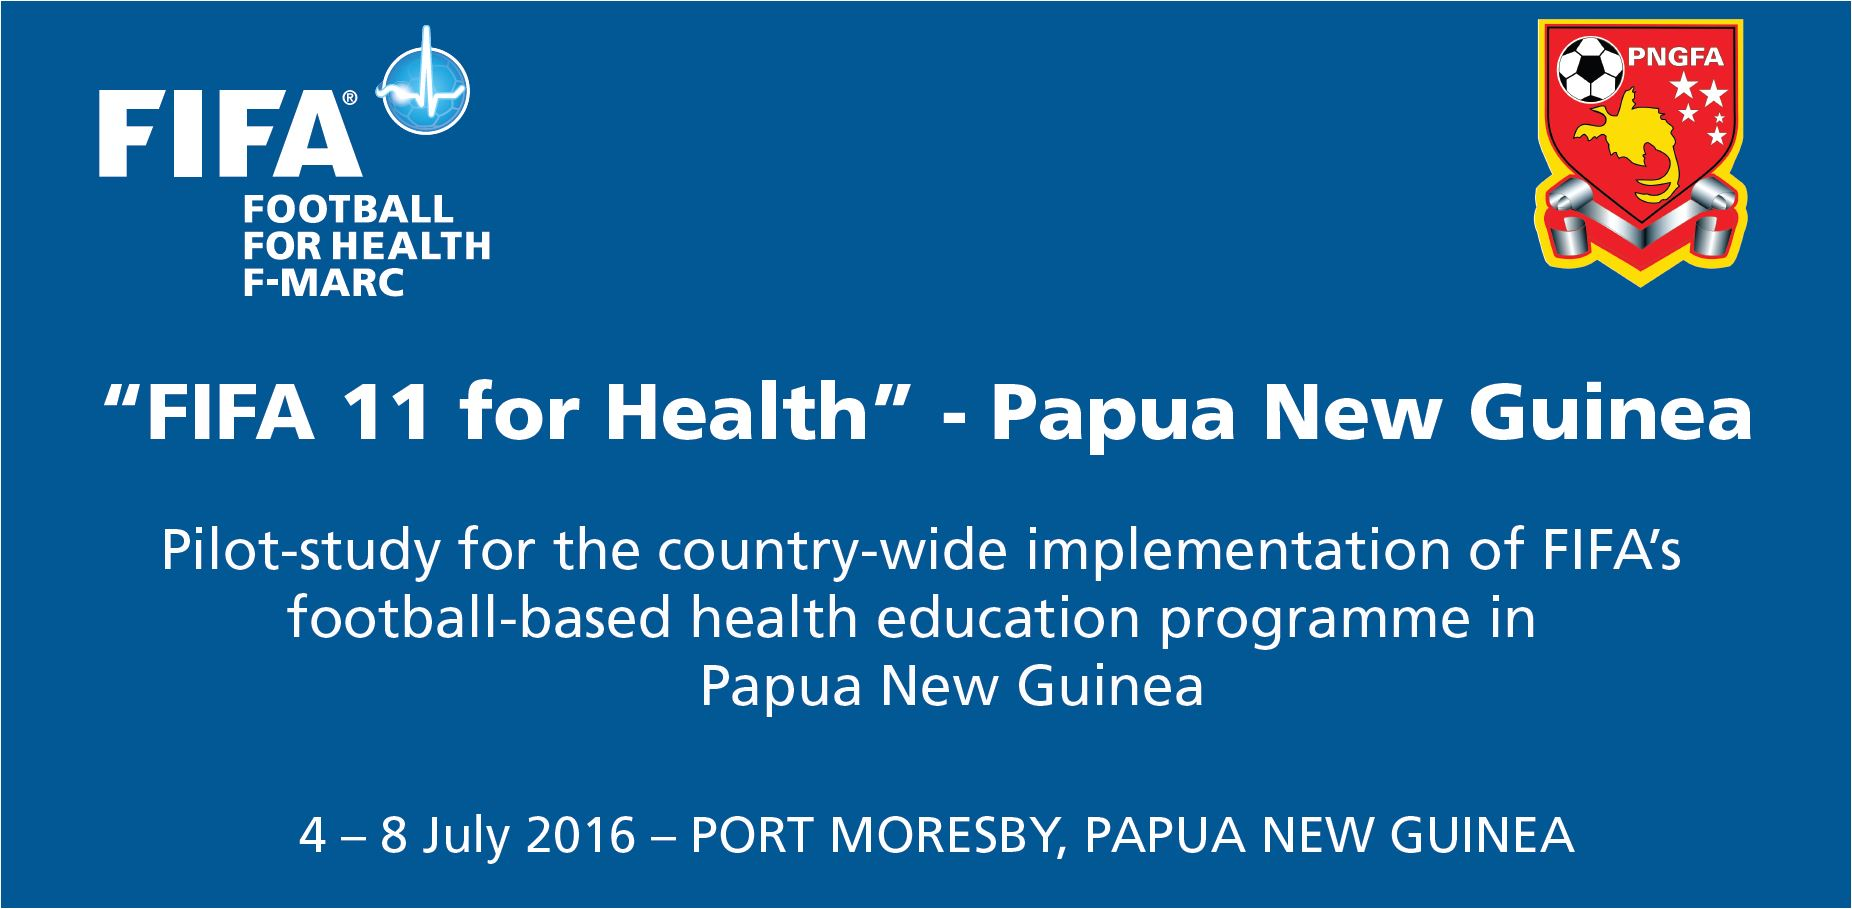 FIFA 11 for Health programme arrives in Papua New Guinea